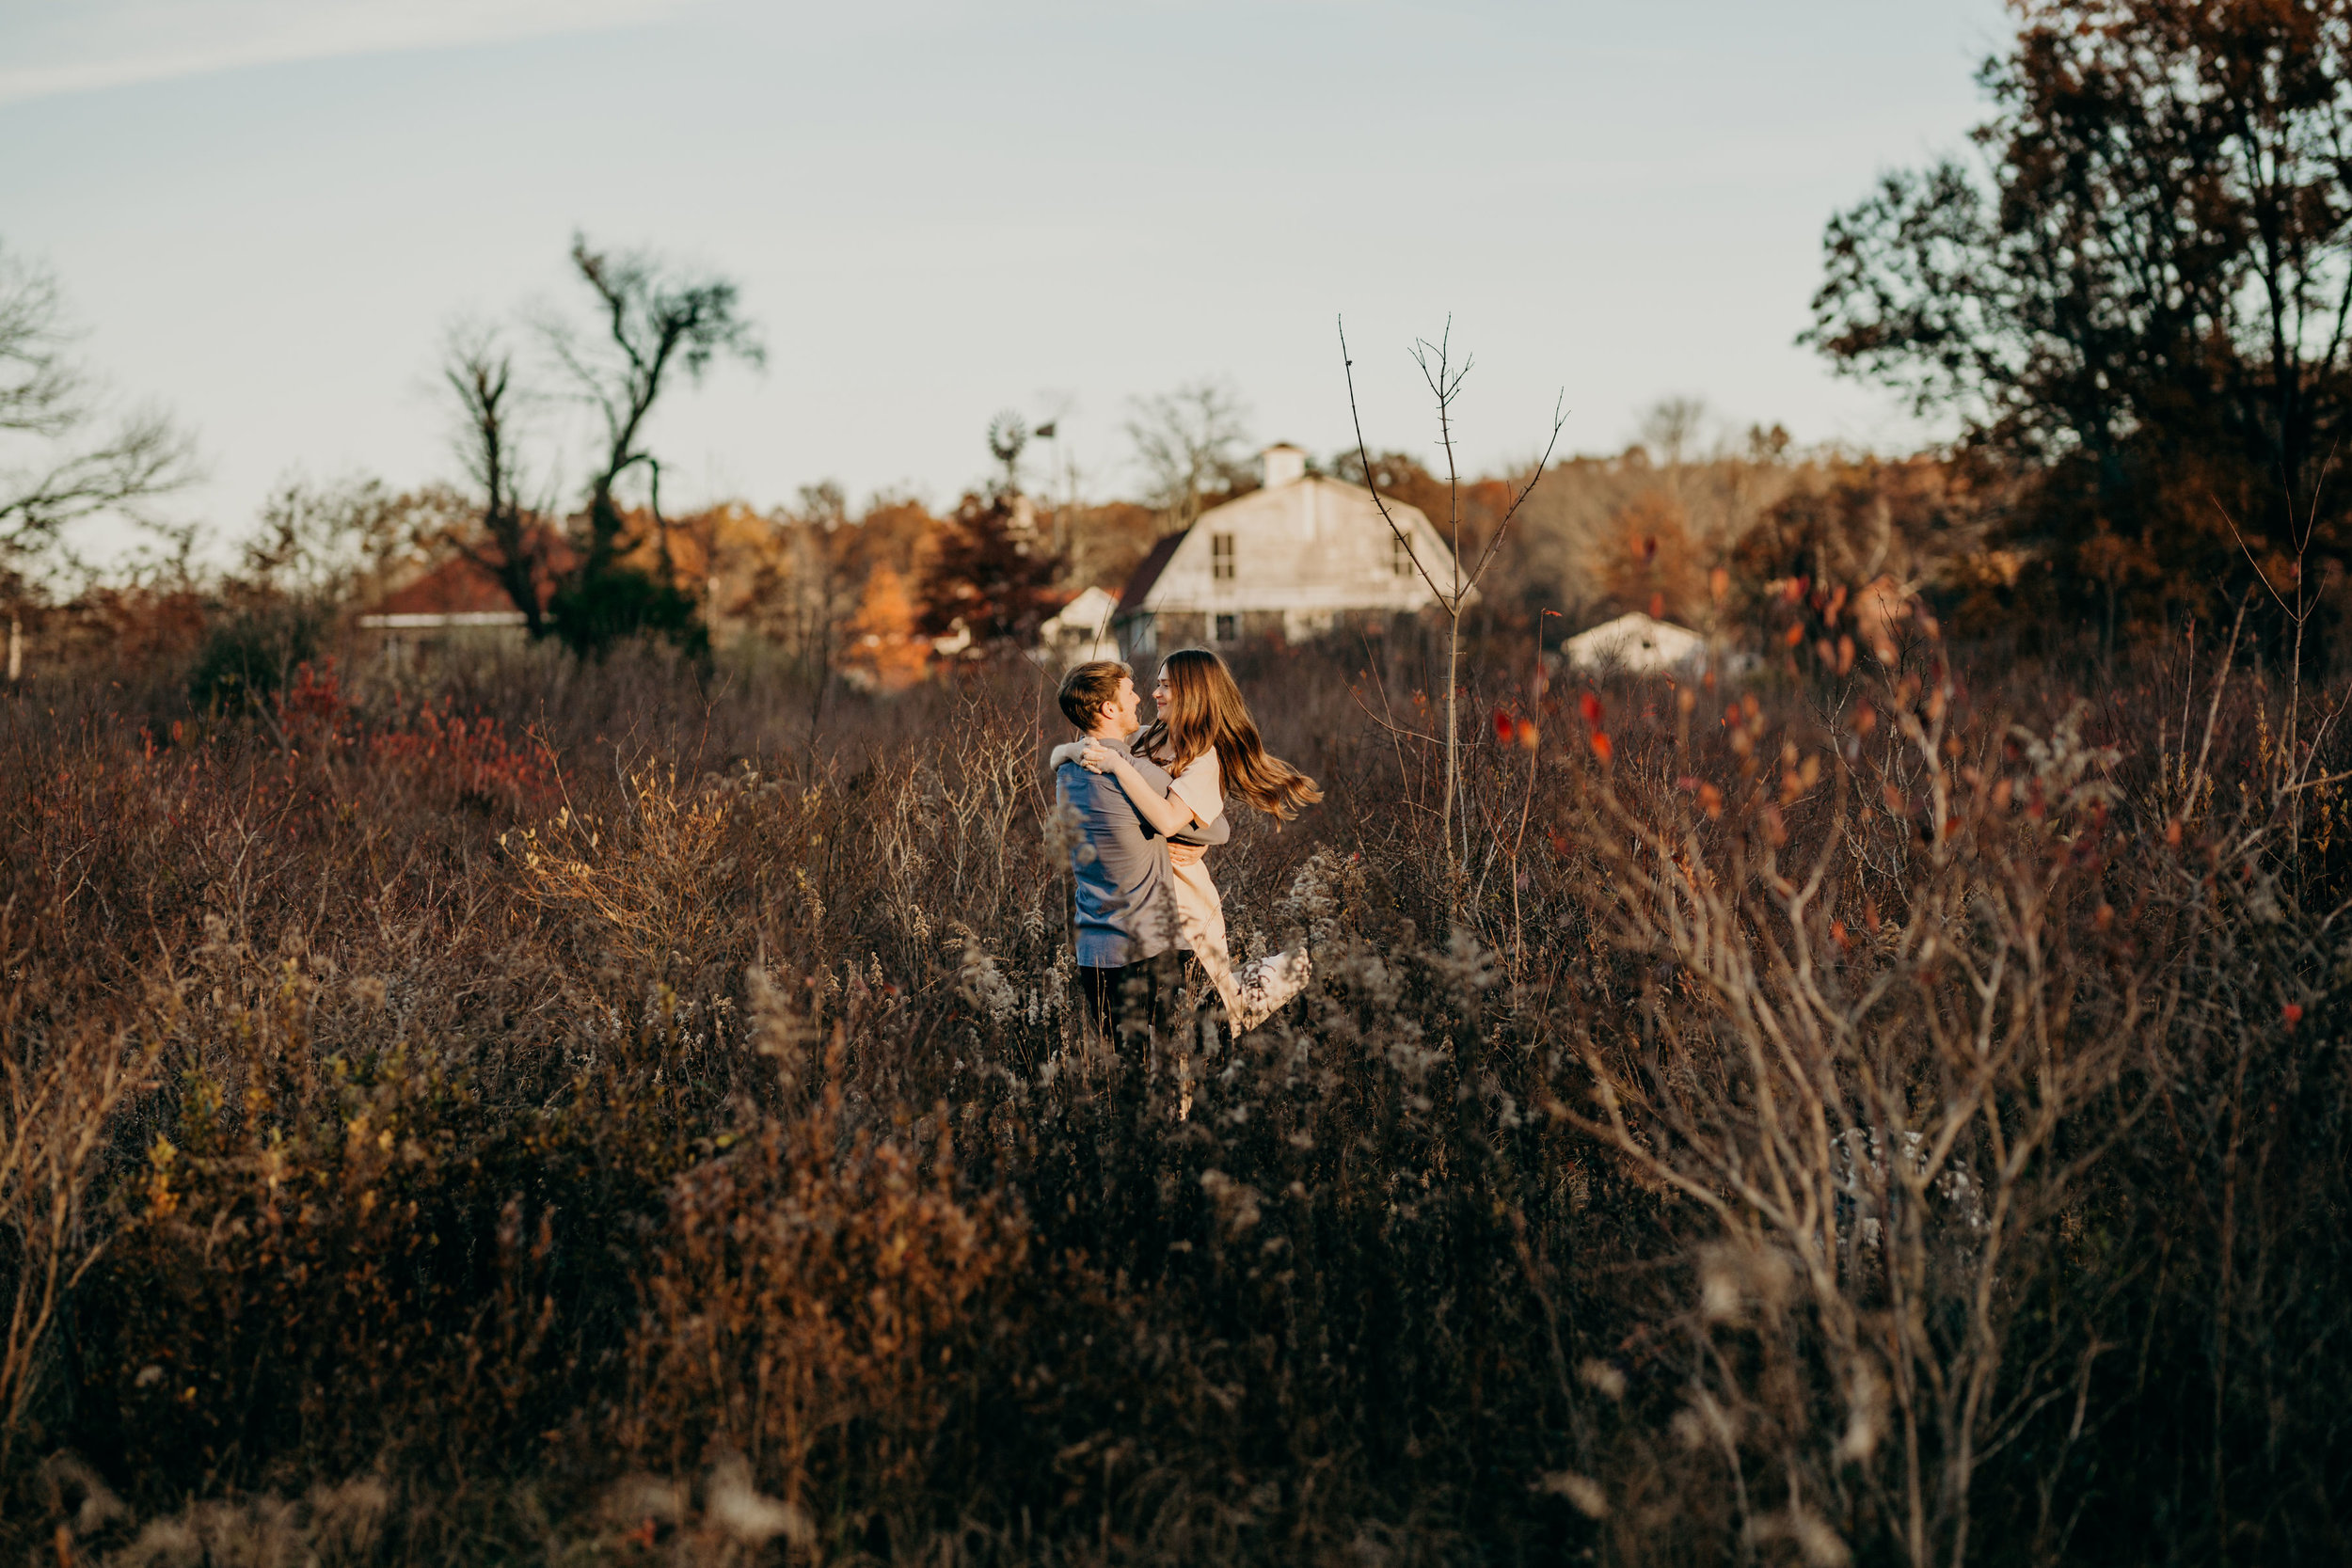 rustic-autumn-fall-north-northern-new-jersey-couple-portrait-elopement-photographer-112.jpg